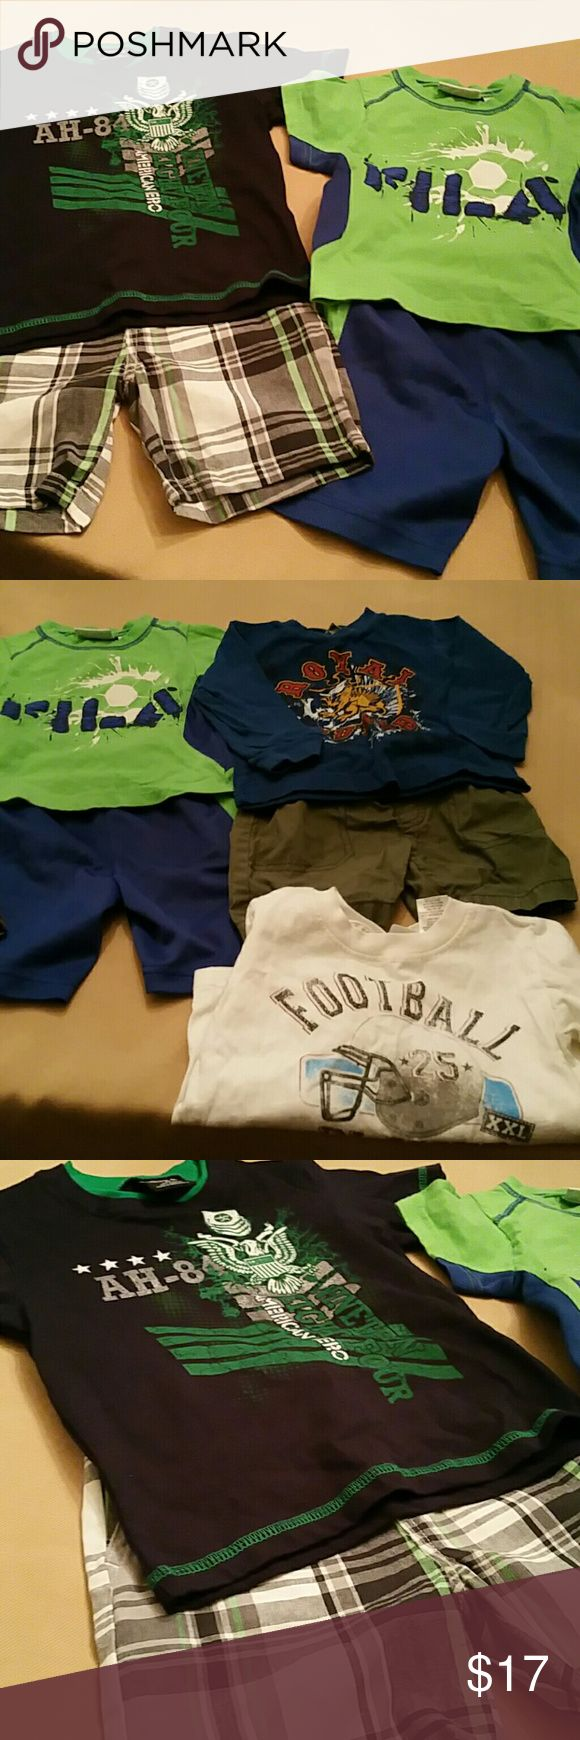 Lot of 7 Pieces Little Boys Clothing What you get....  4- Shirts (3 Short Sleeve and 1 Long)  3- Shorts  All Clothing are Size 2T Matching Sets